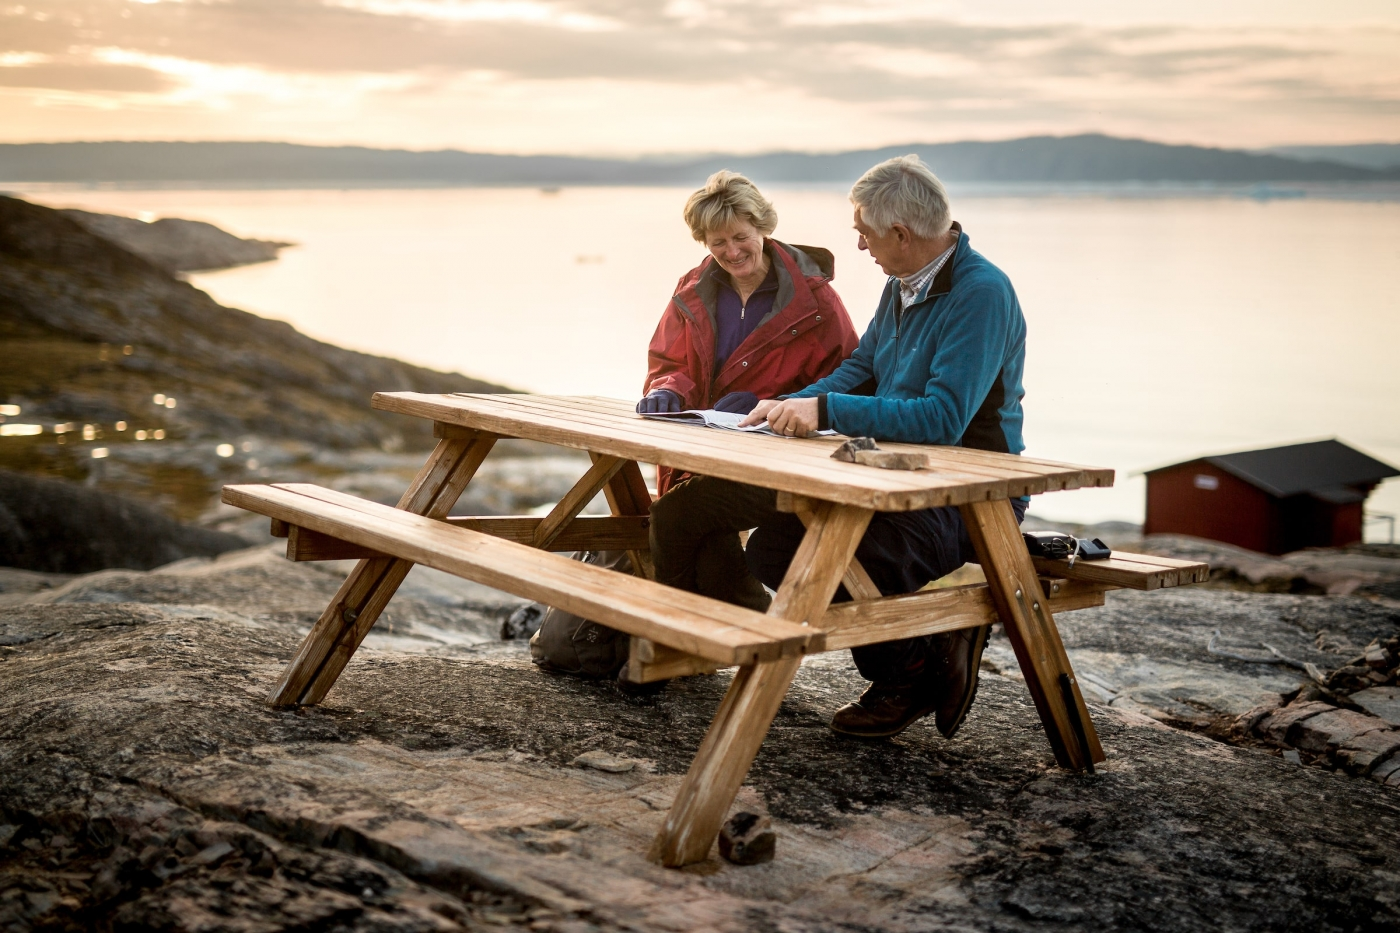 Two guests at Eqi Glacier Lodge in Greenland studying a map in the sunset. By Mads Pihl